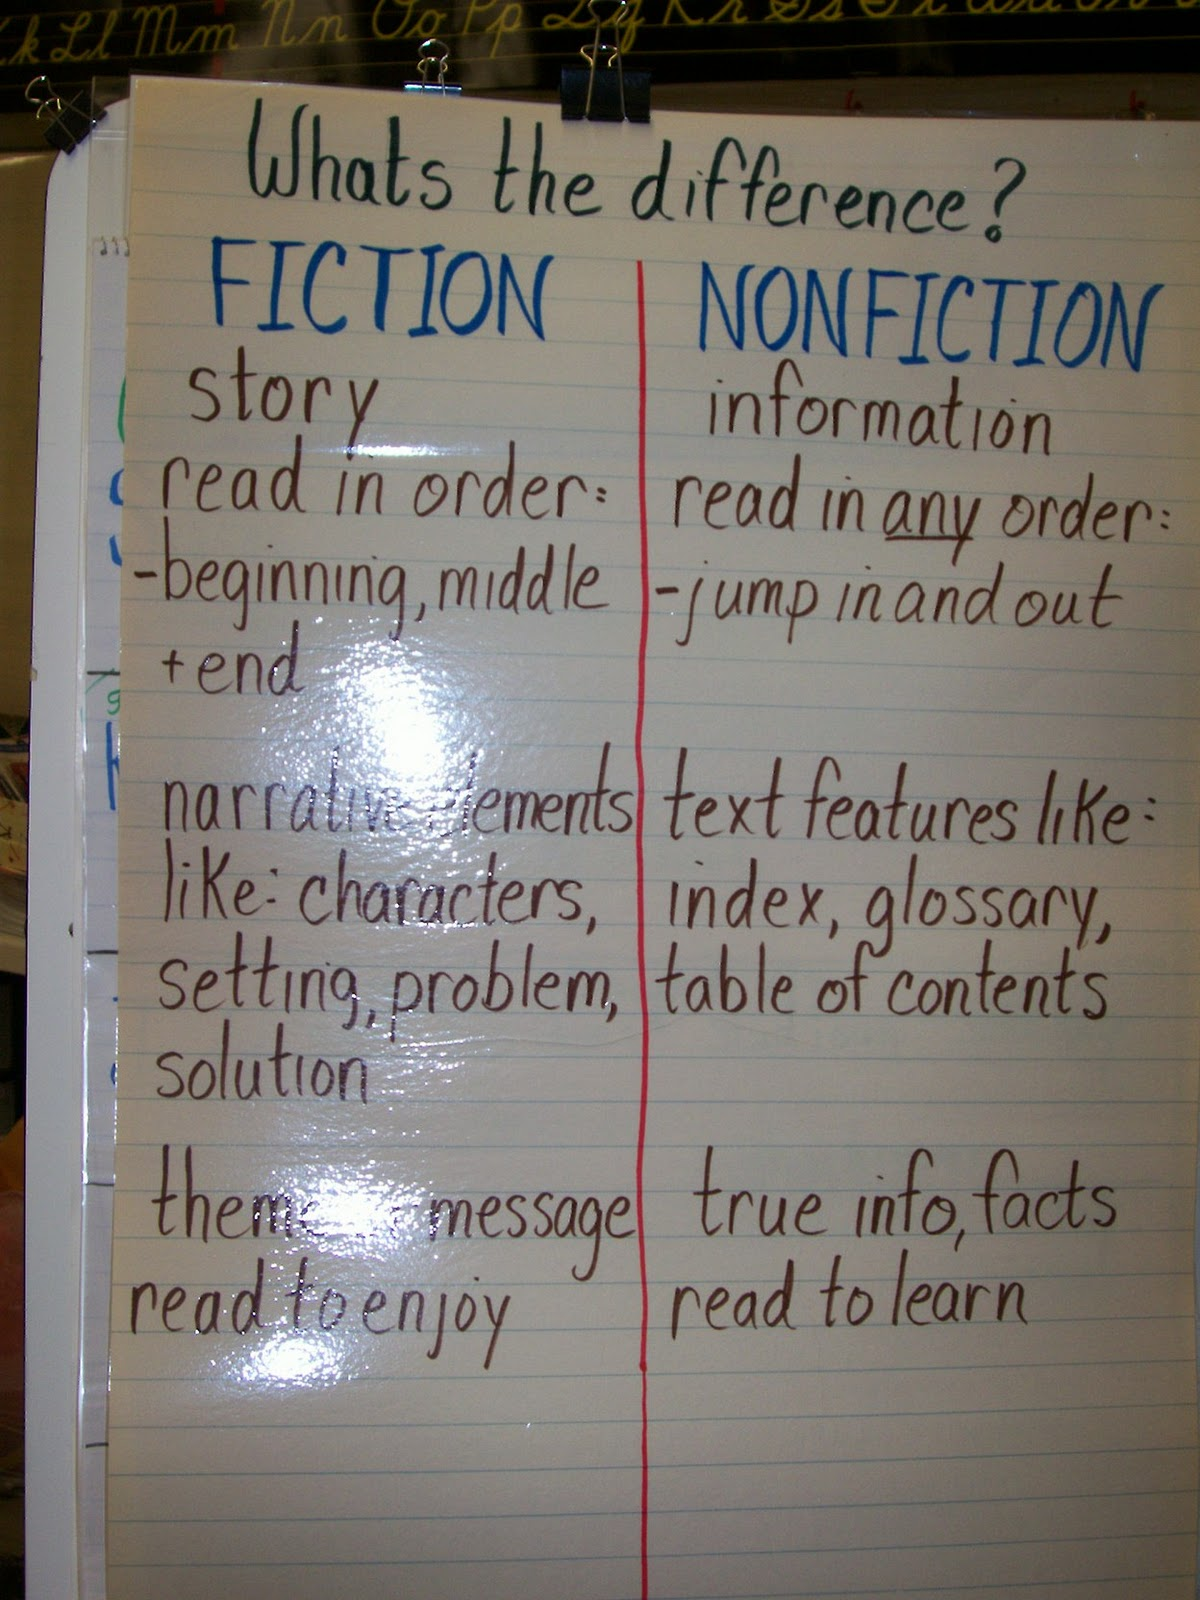 compare and contrast essay on fiction and nonfiction Read and download compare and contrast fiction and nonfiction passages free ebooks in pdf format love beyond compare compare order numbers compare numbers a doctor beyond.